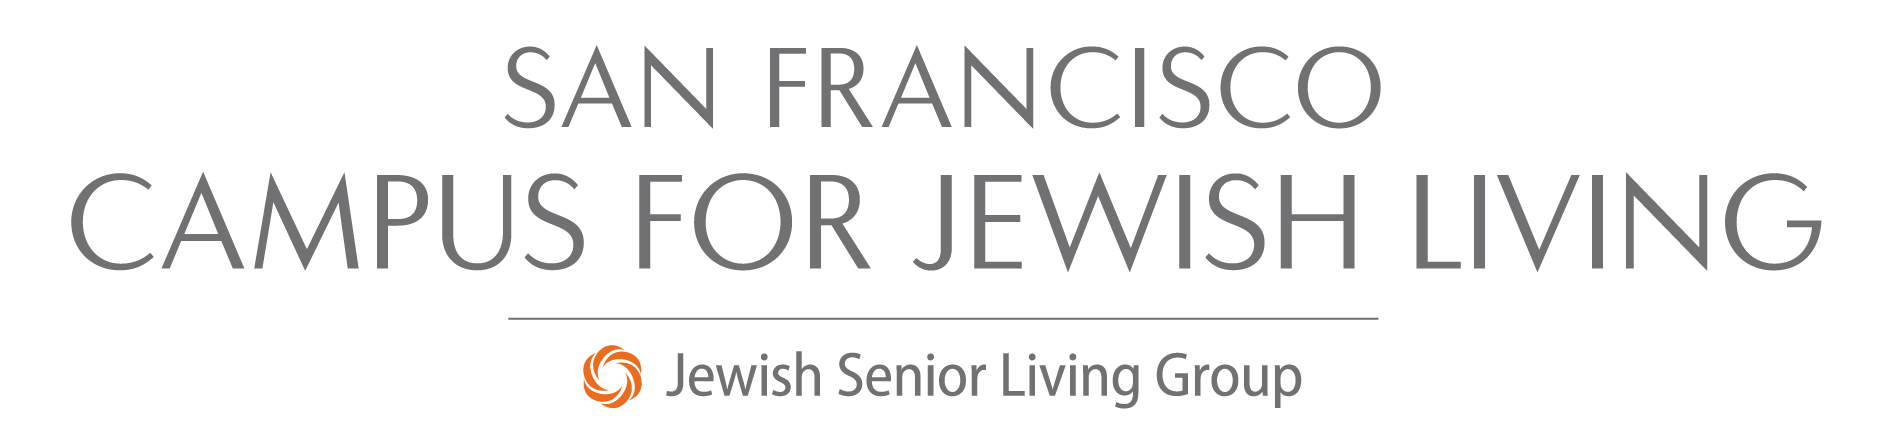 San Francisco Jewish Living